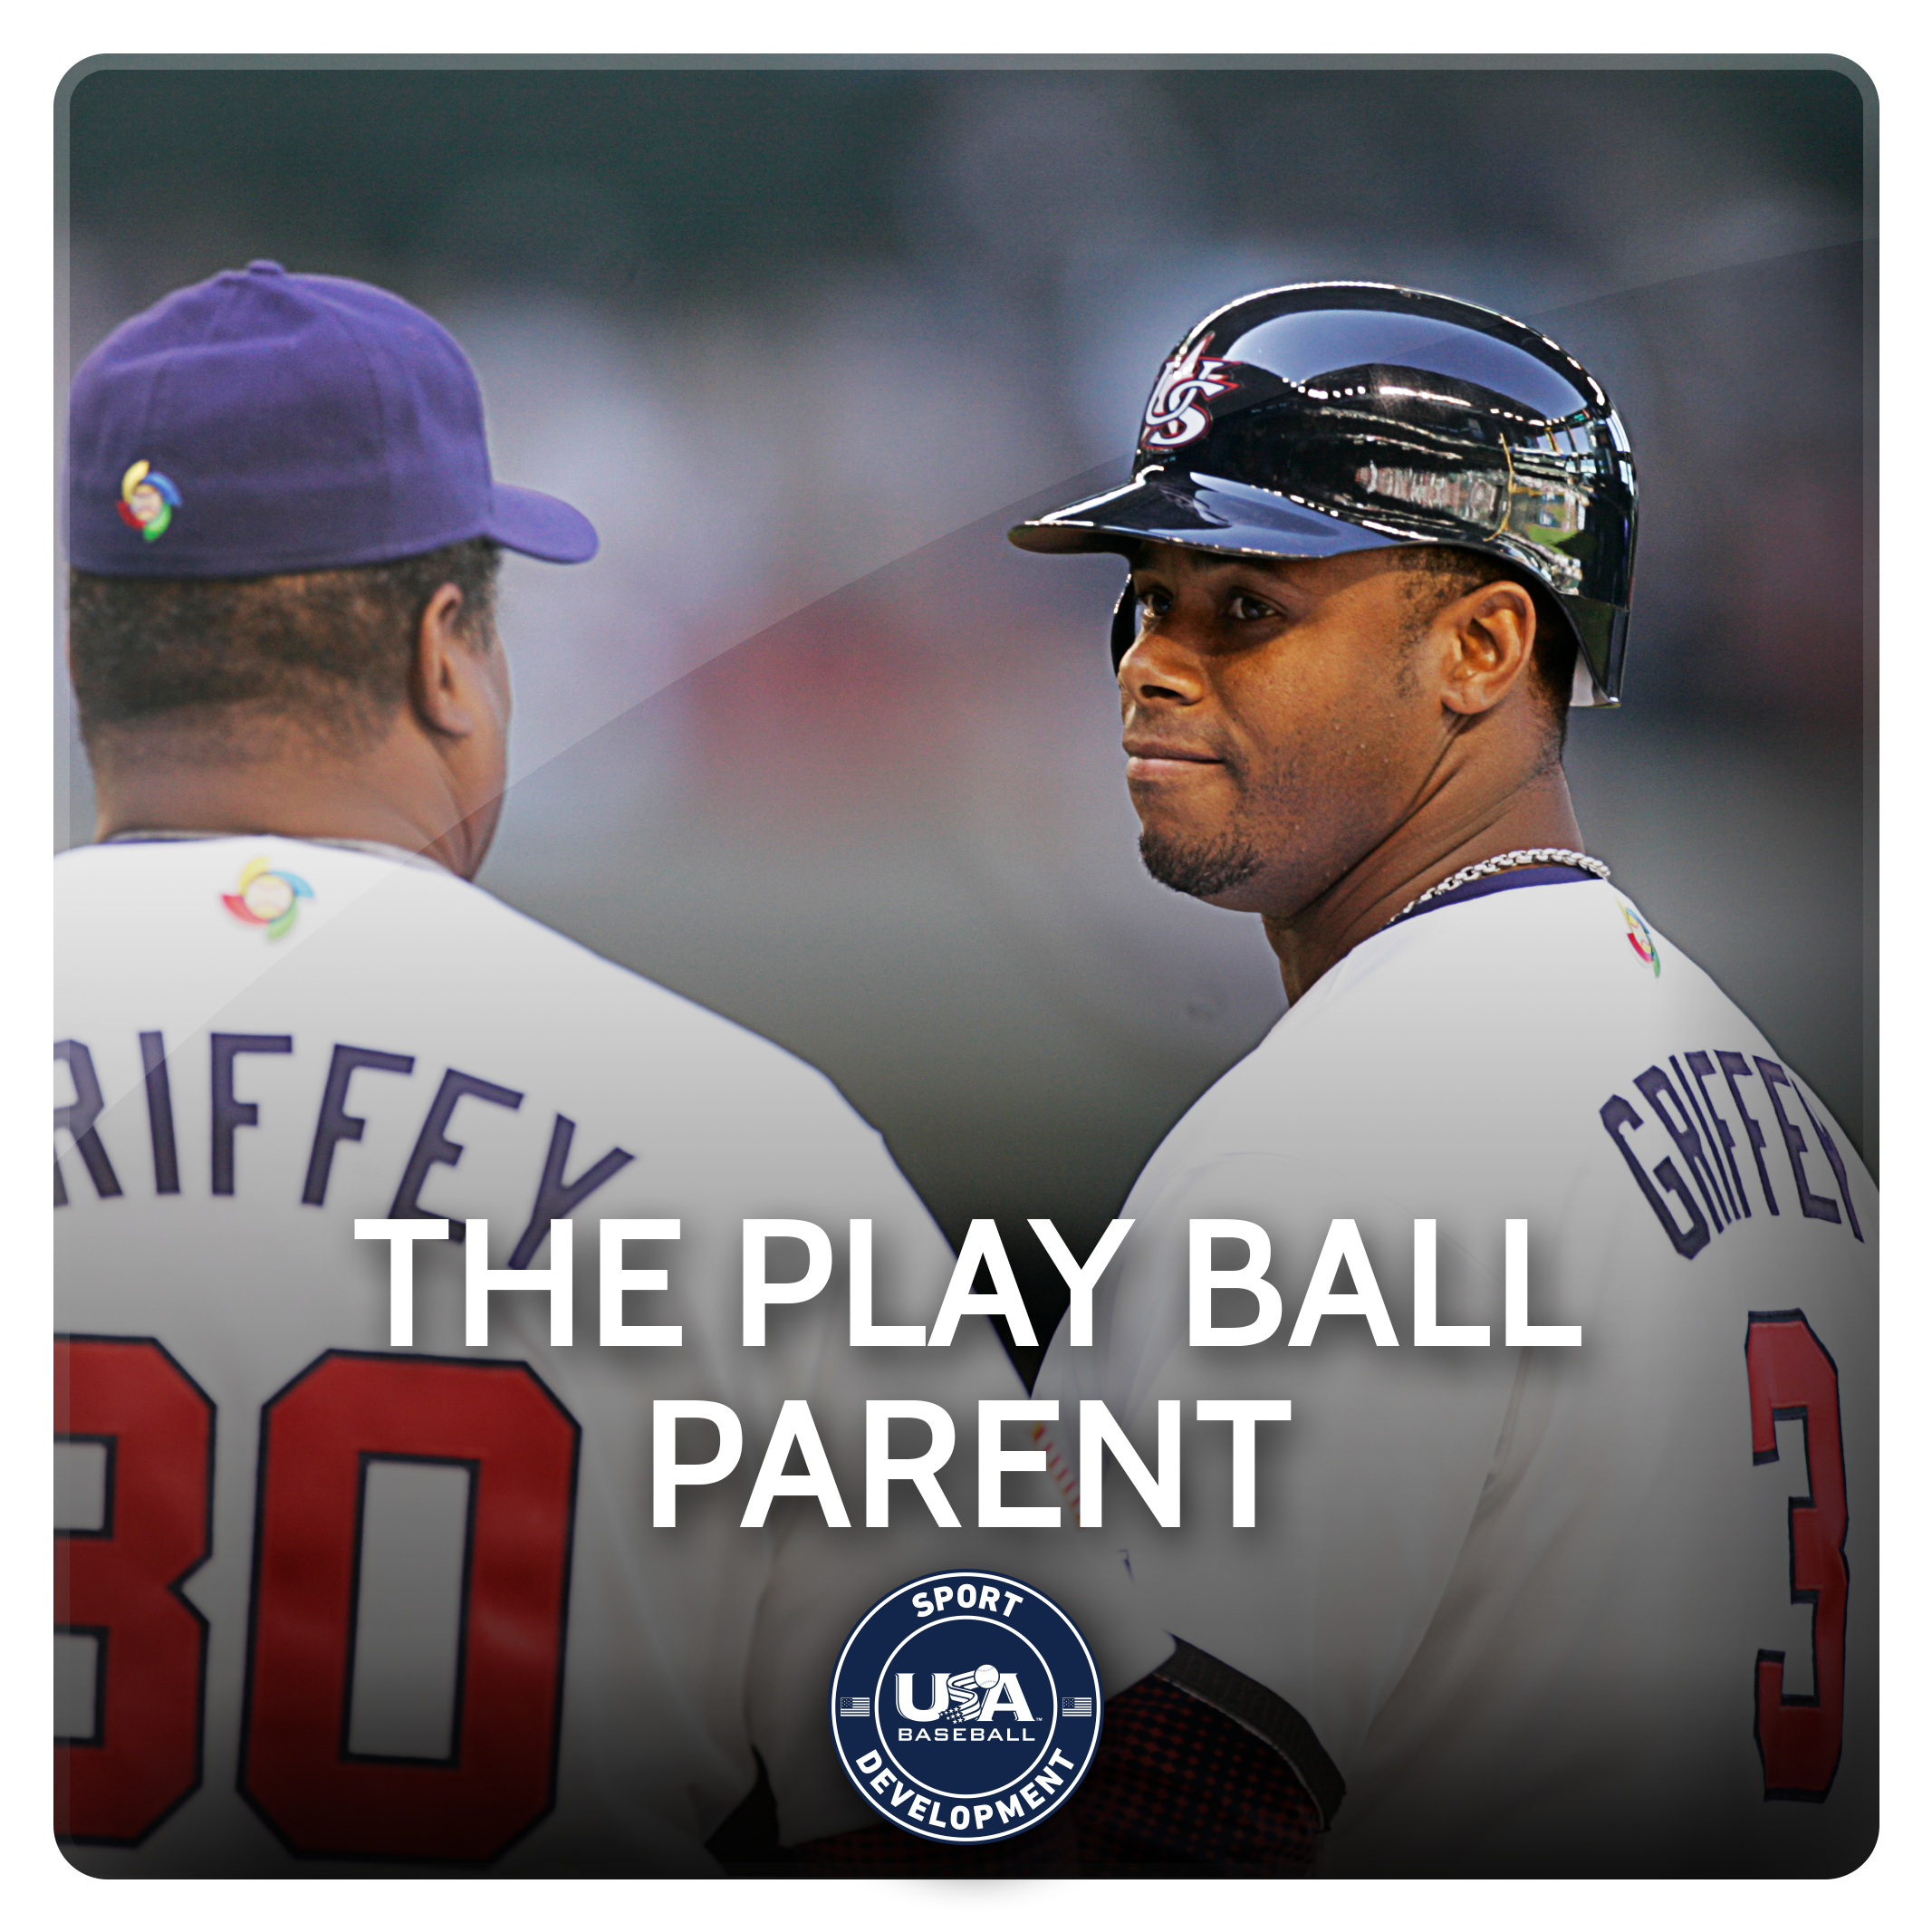 The Play Ball Parent